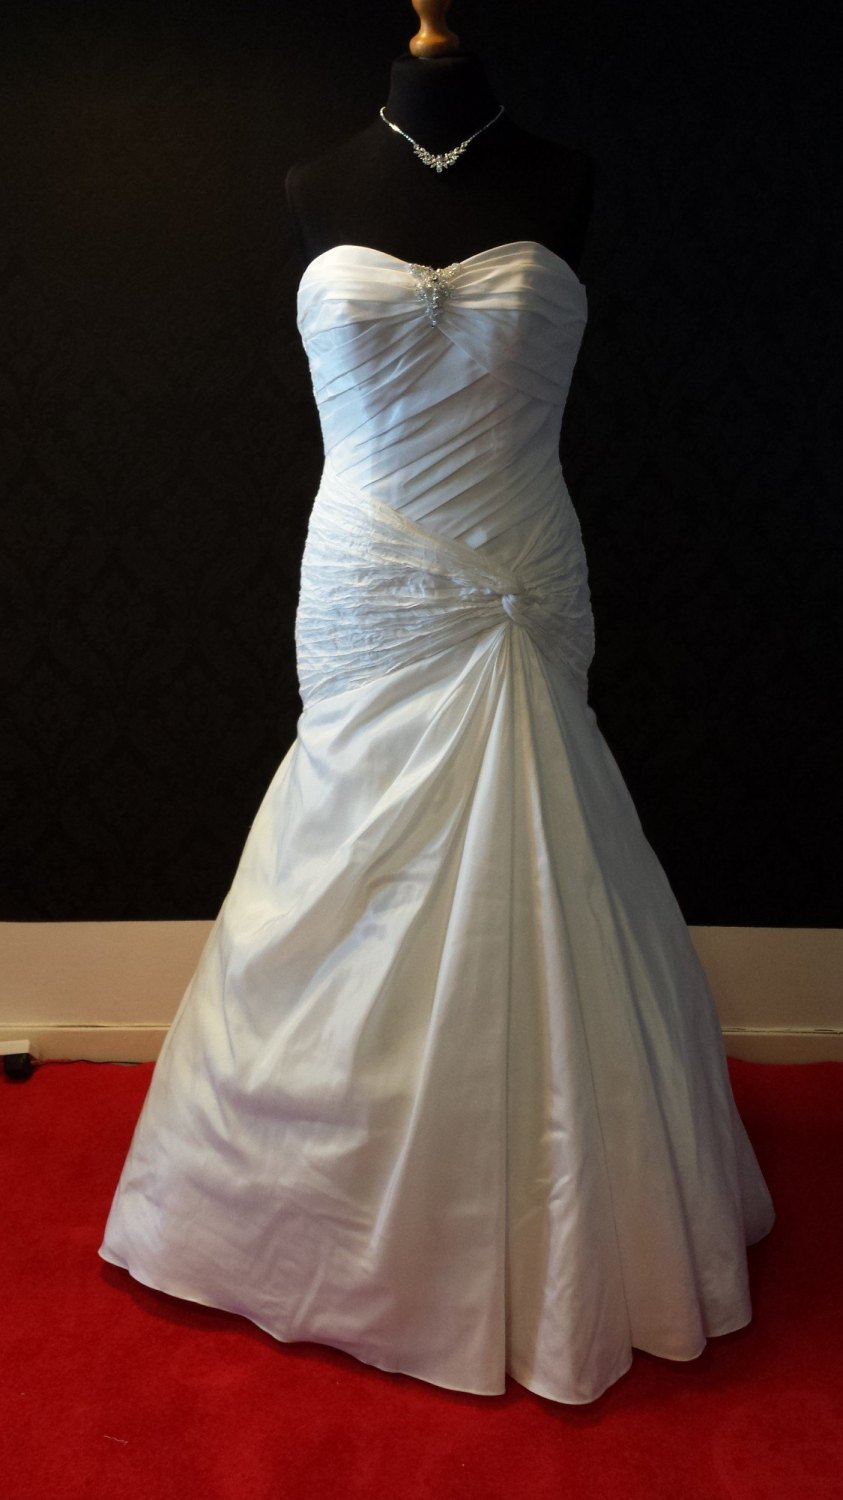 NEW Off White Strapless Wedding Gown - Size 12/14